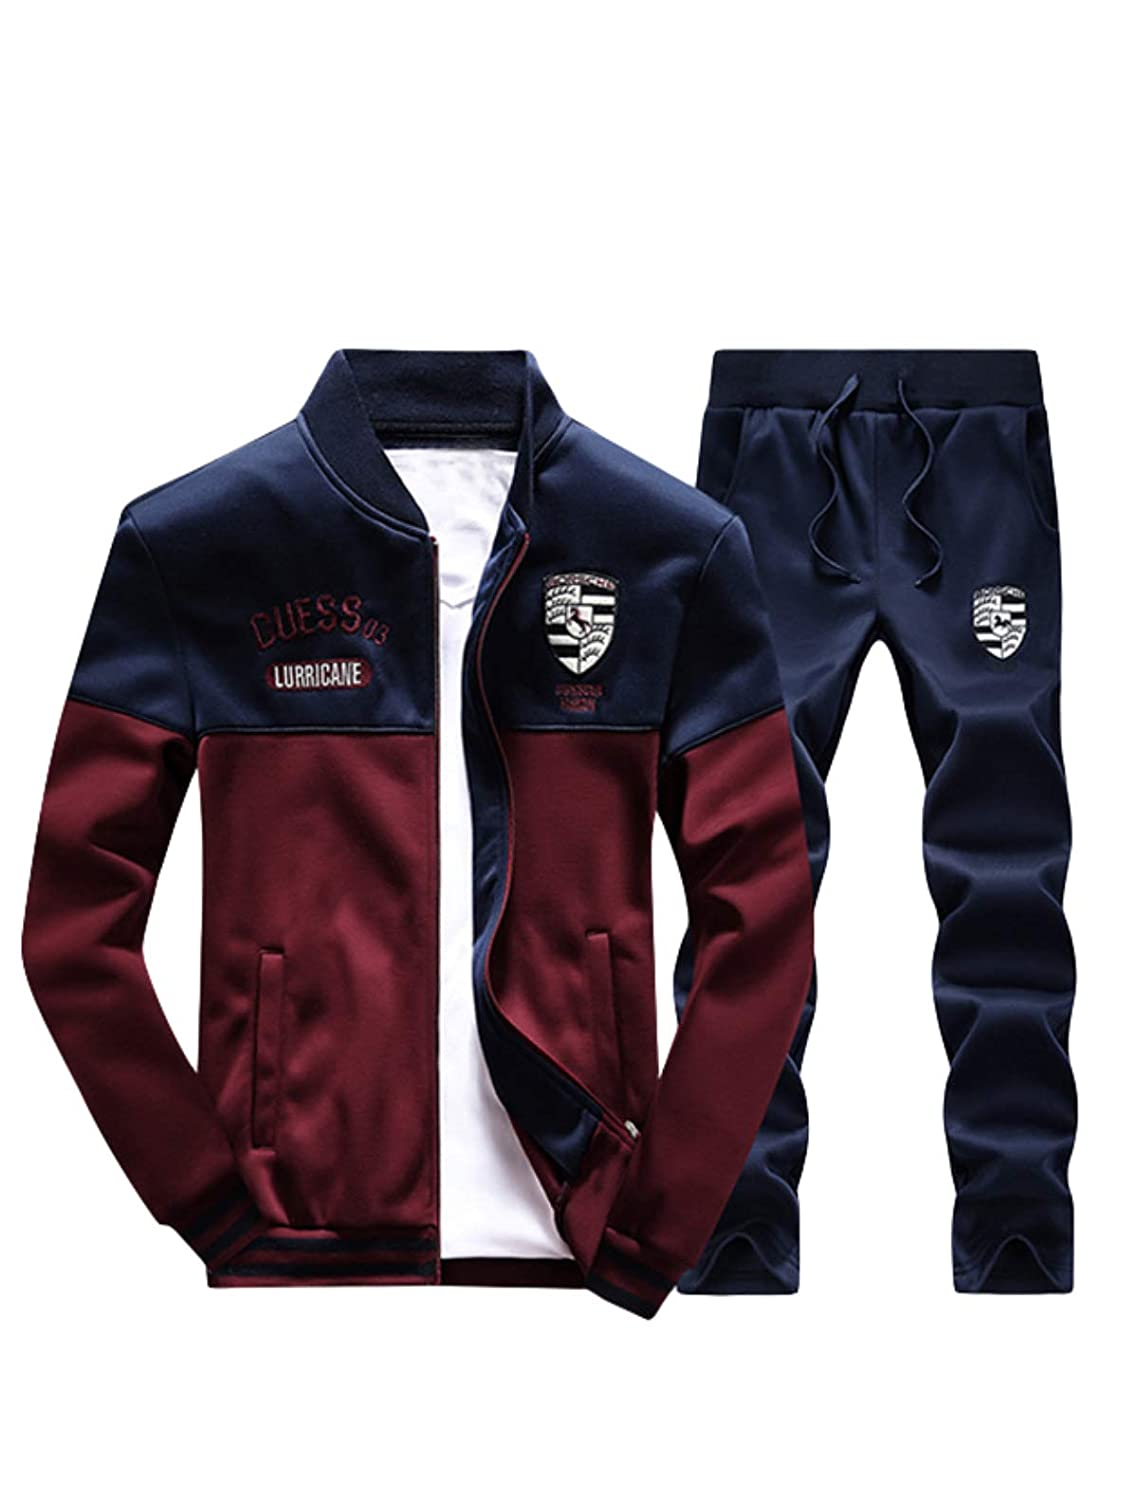 Lavnis Men's Casual Tracksuit Long Sleeve Full zip Running Jogging Sports Jacket And Pants